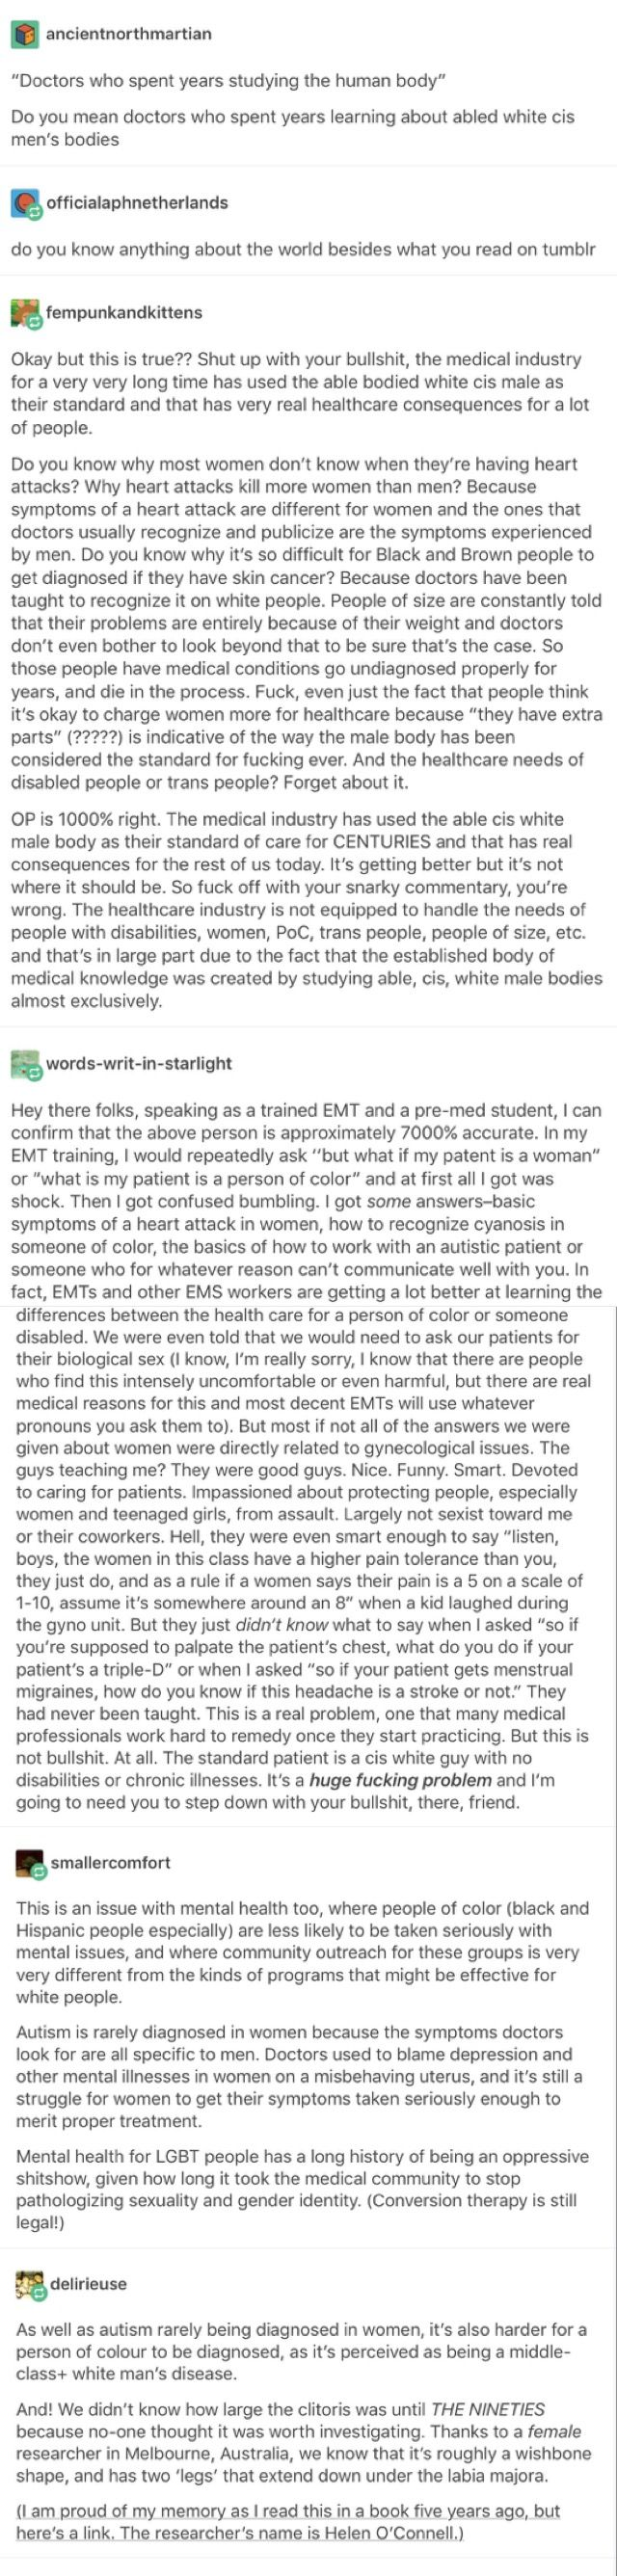 I know, this isn't exactly feminism related, but I find it really important so I'll just put it up here for you to read it